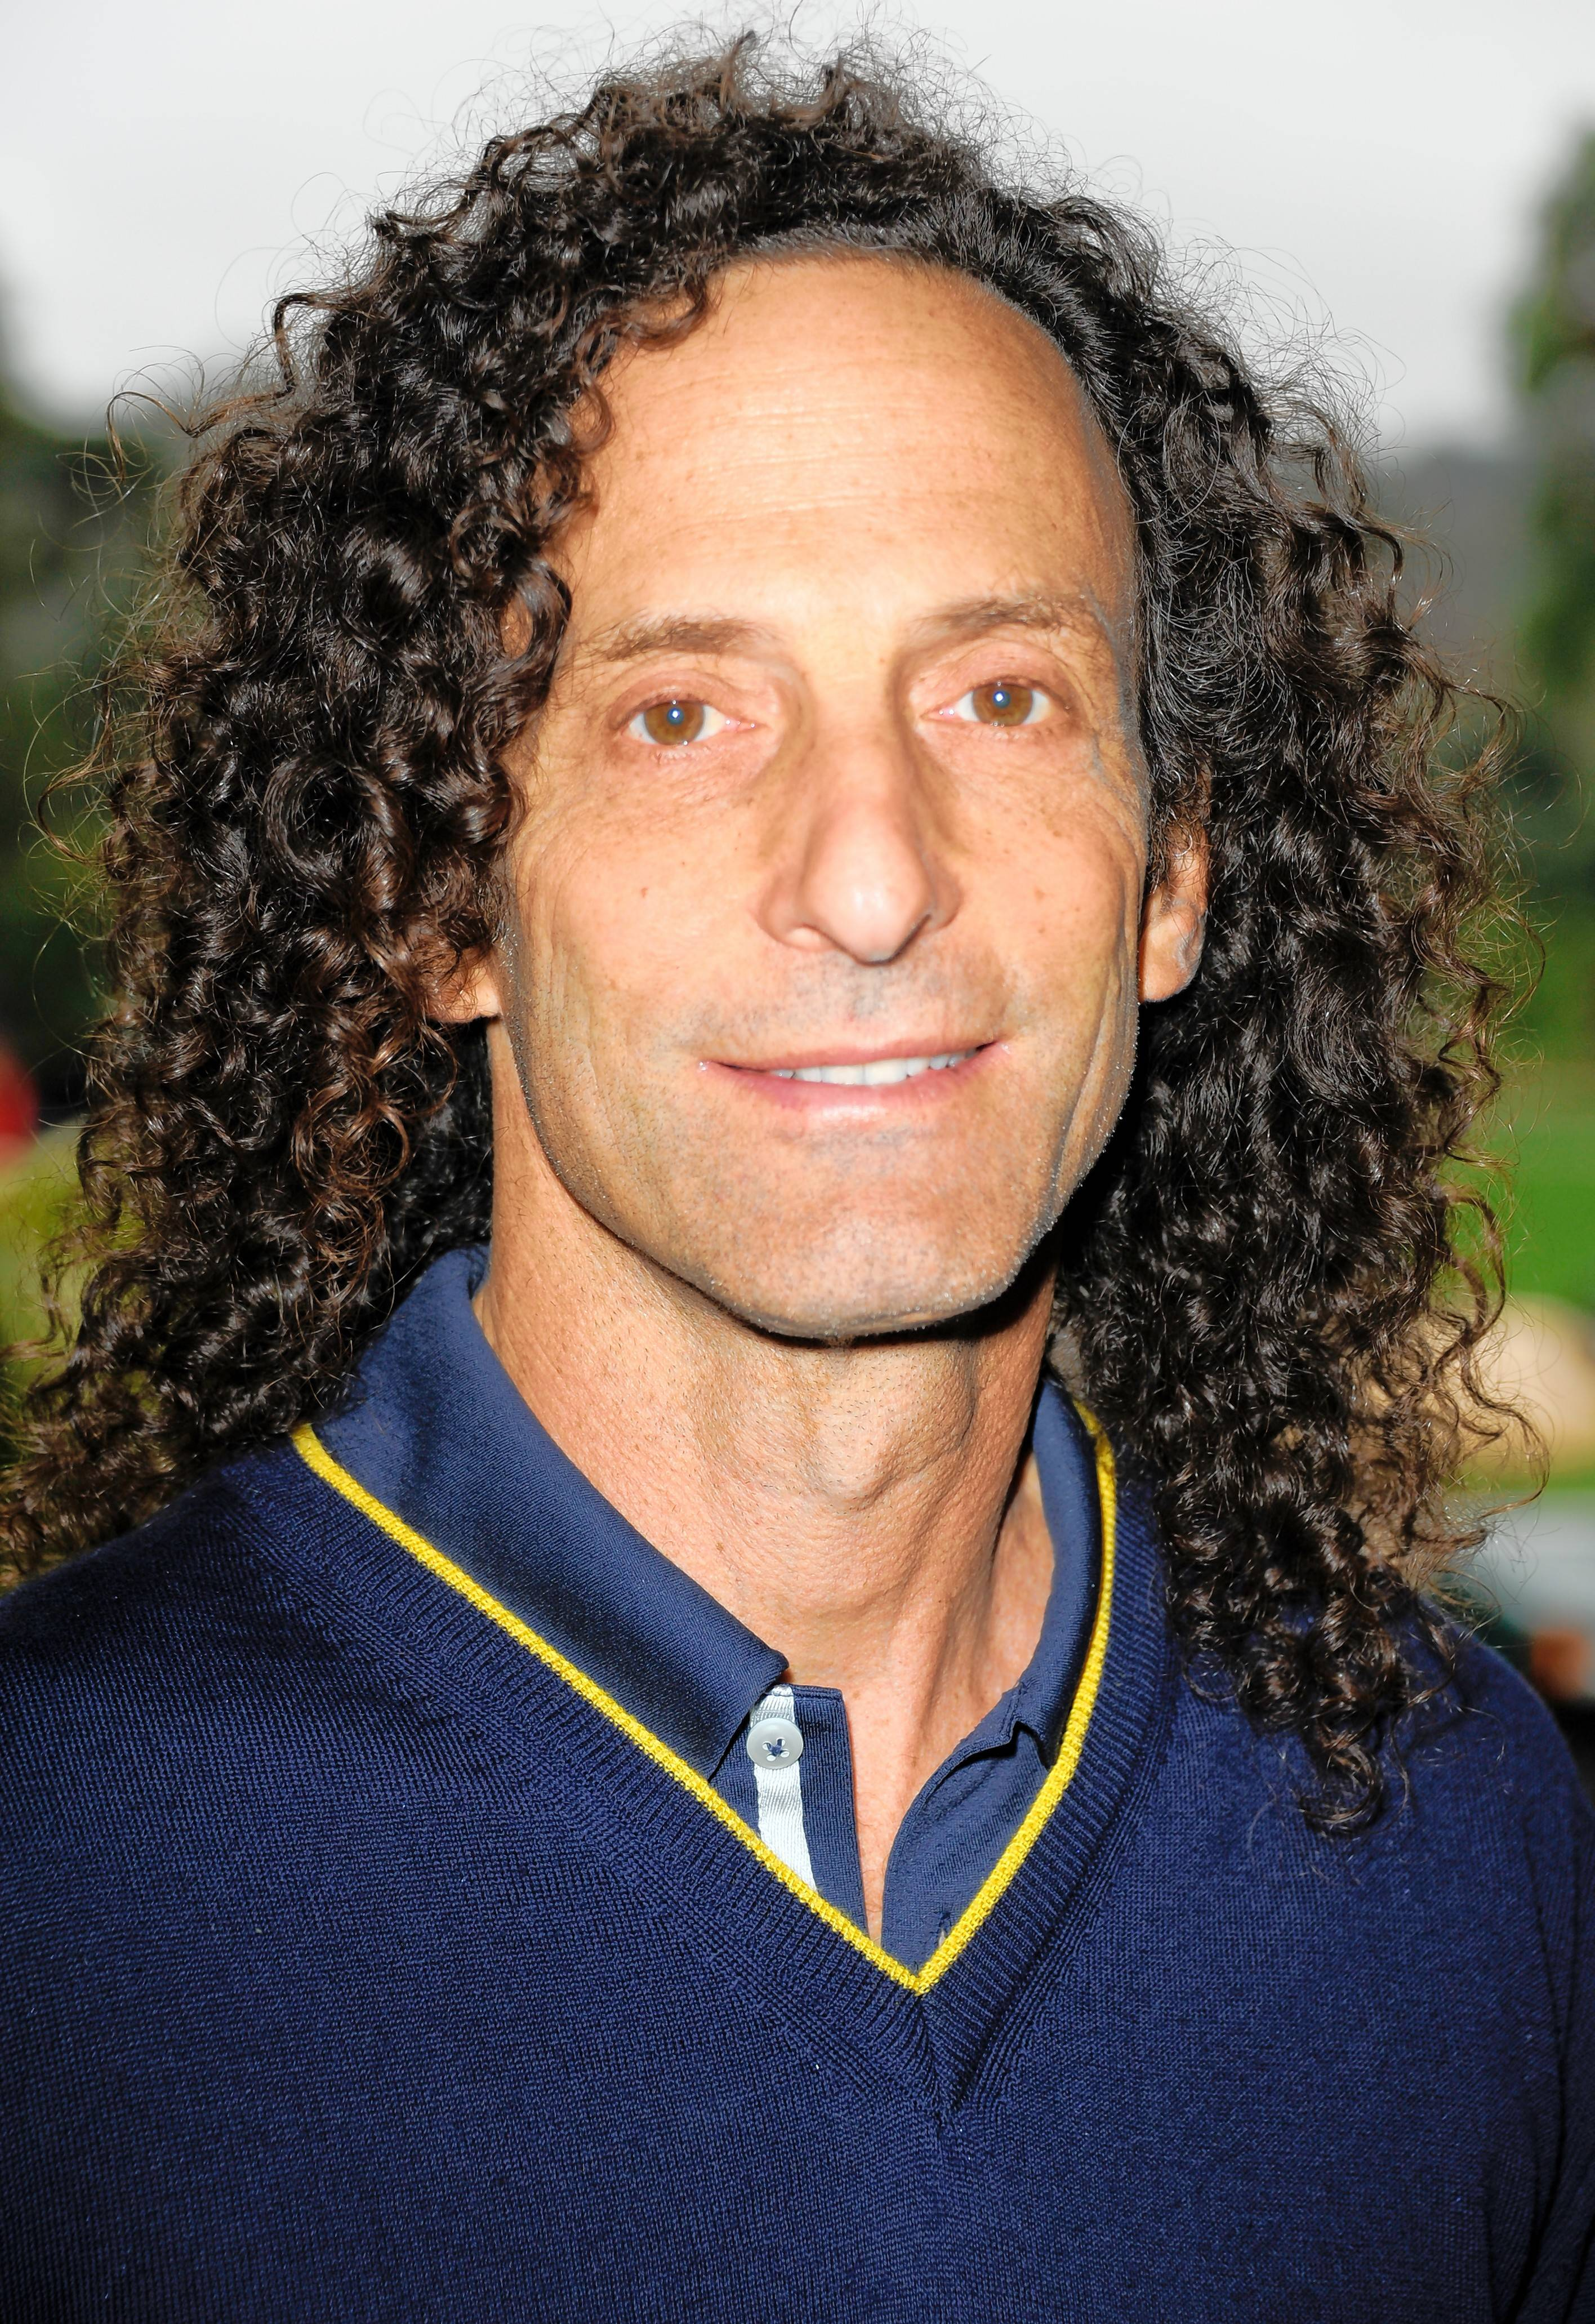 Kenny G performs at the Genesee Theatre in Waukegan.